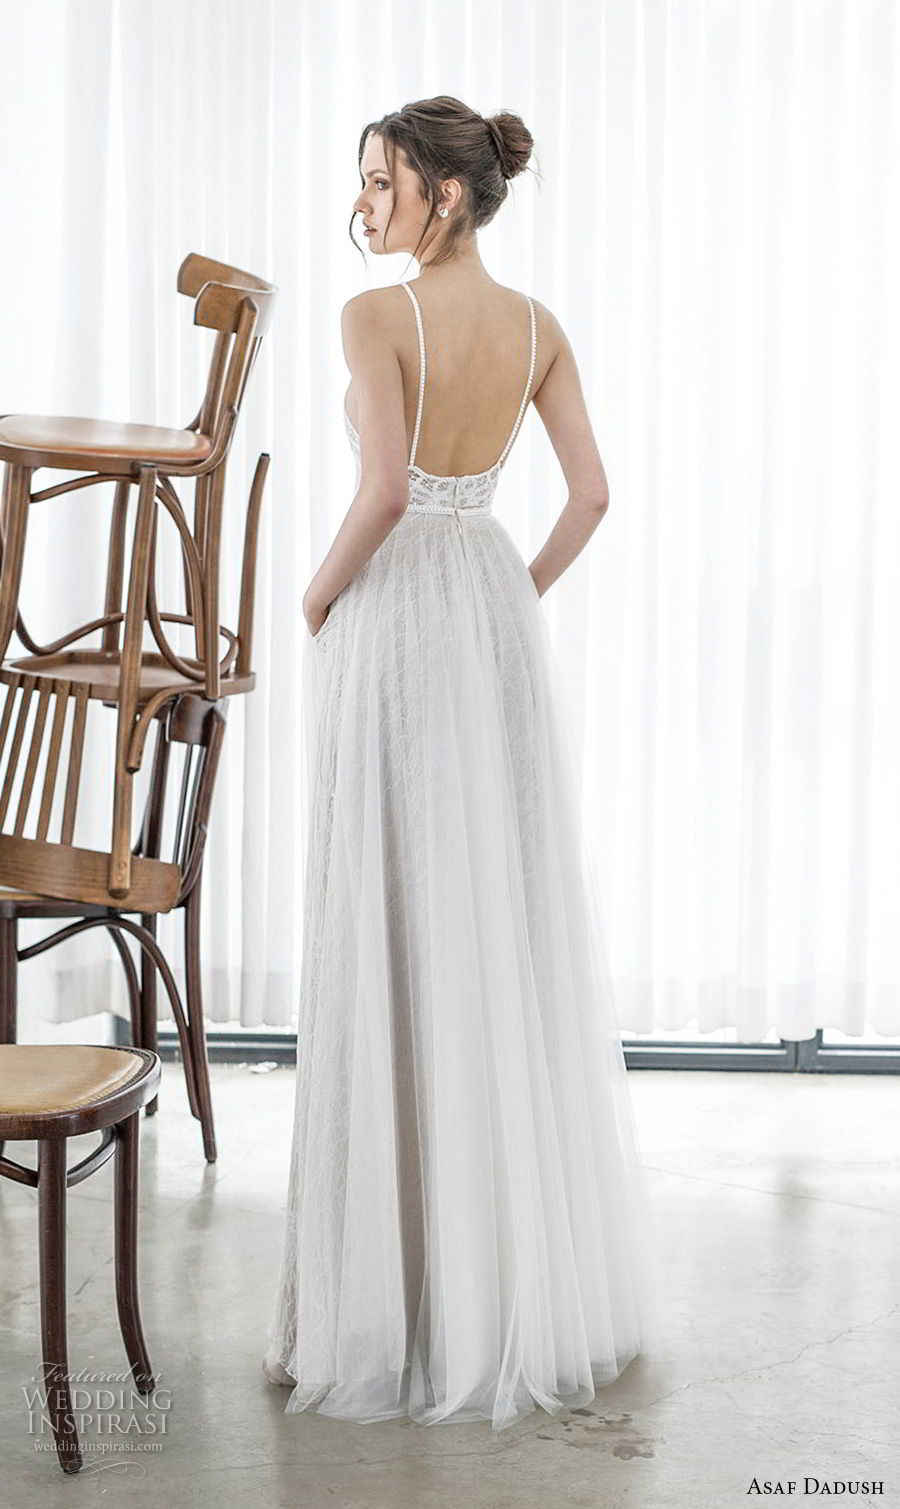 asaf dadush 2017 bridal sleeveless halter neck heavily embellished bodice romantic soft a line wedding dress with pockets open back sweep train (13) bv